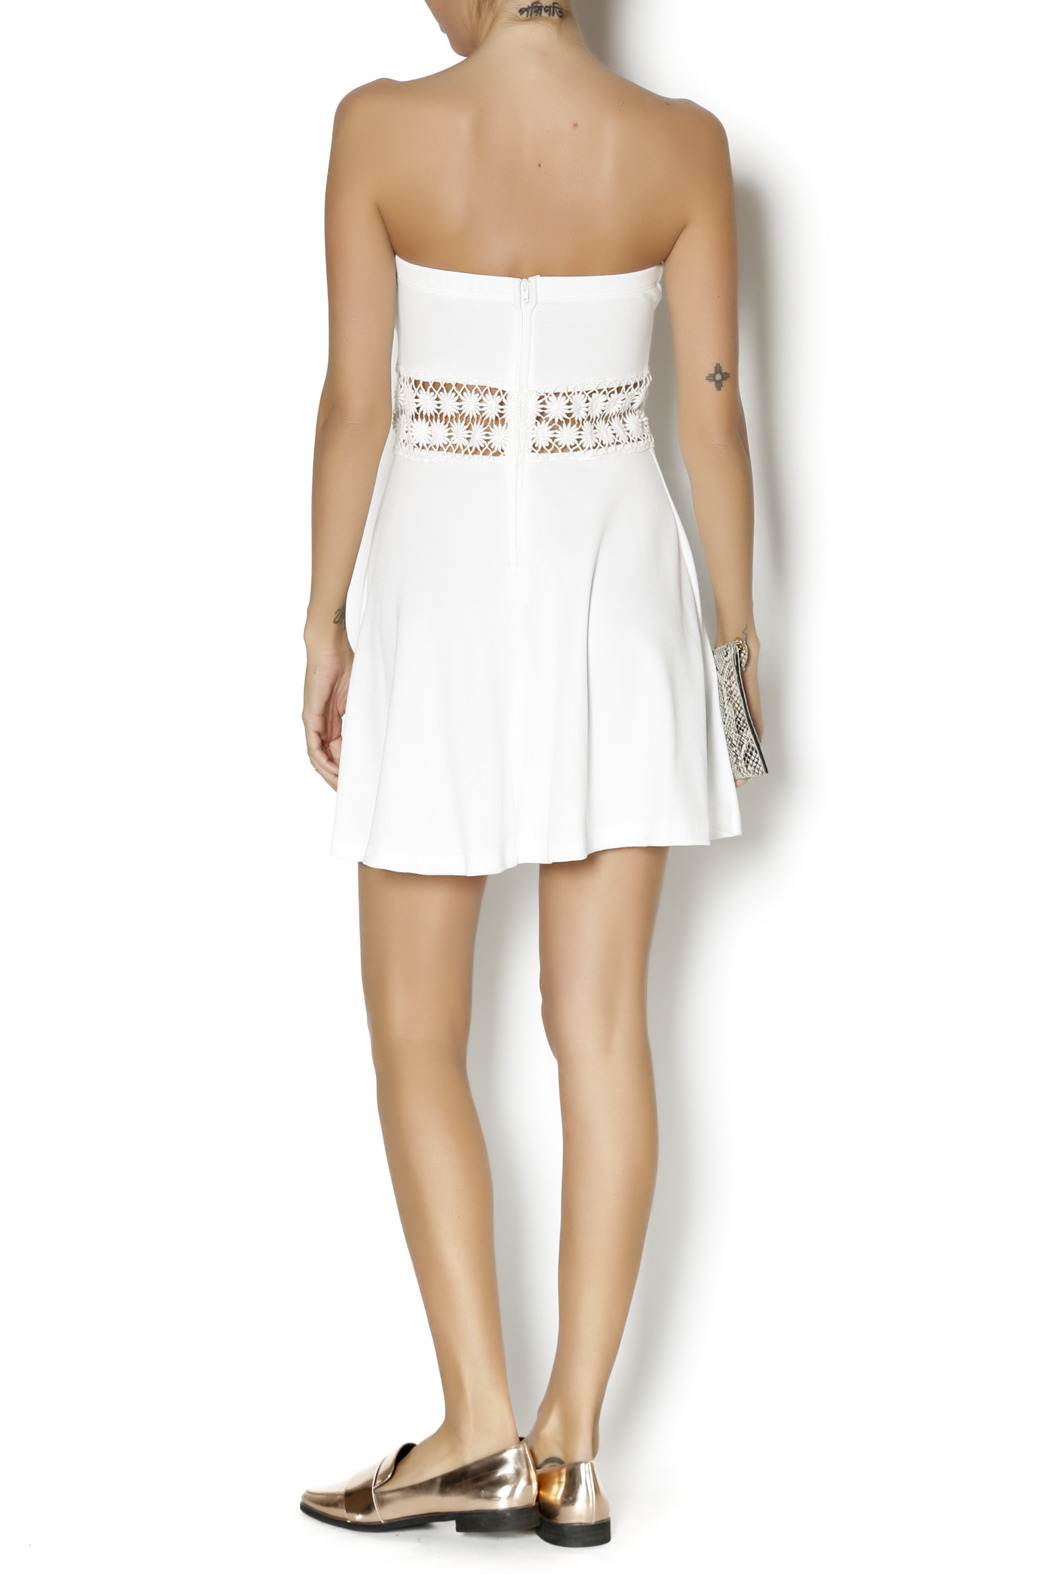 Coveted Clothing Strapless Emily Dress - Side Cropped Image